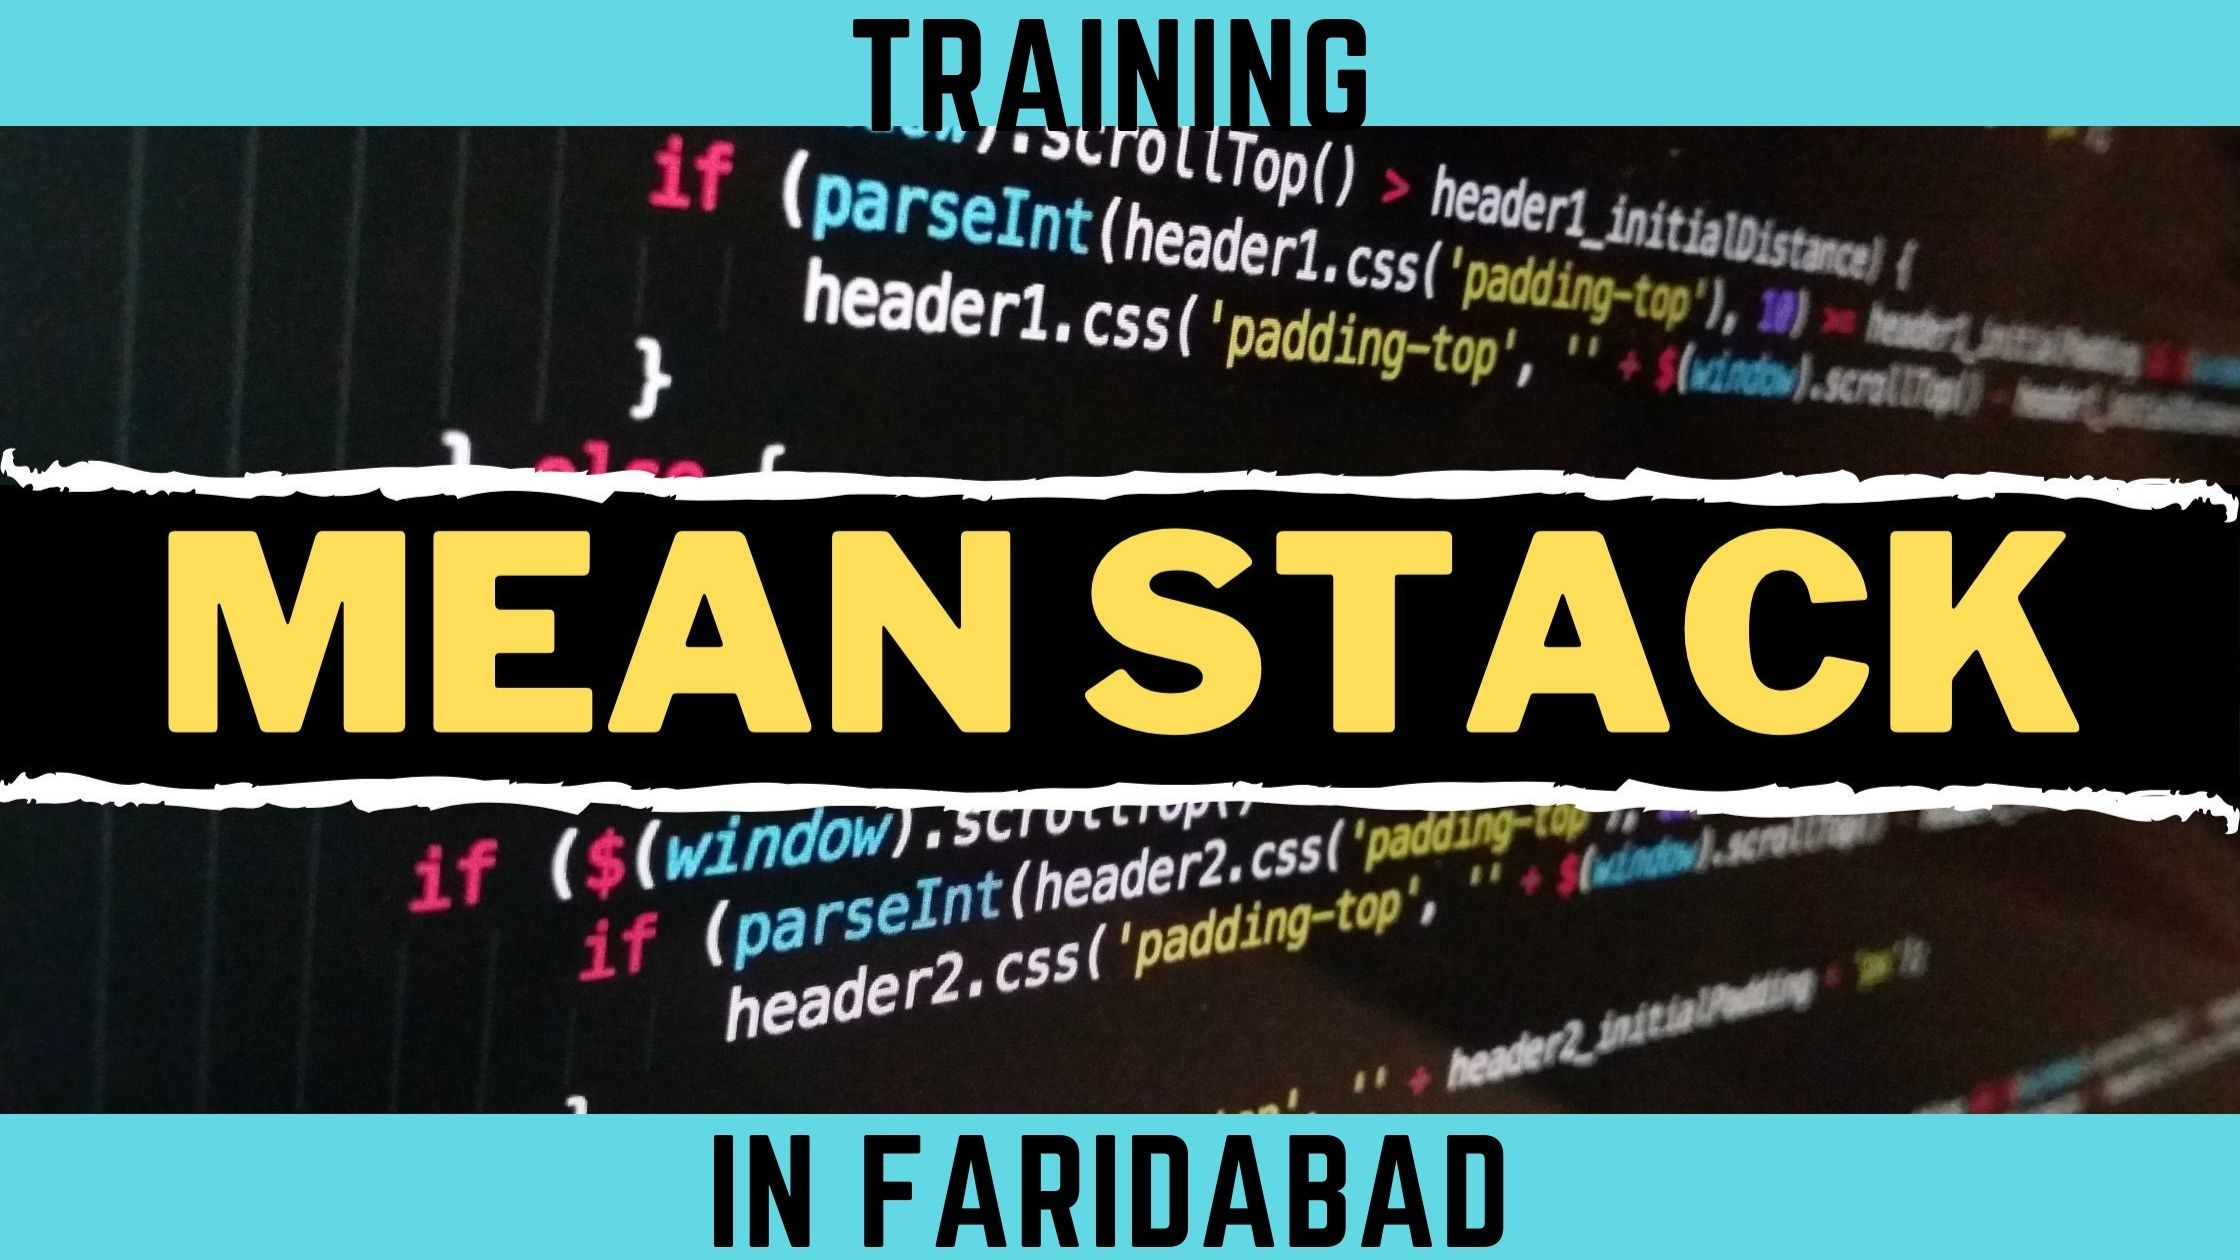 mean_stack_training_in_faridabad-background.jpeg